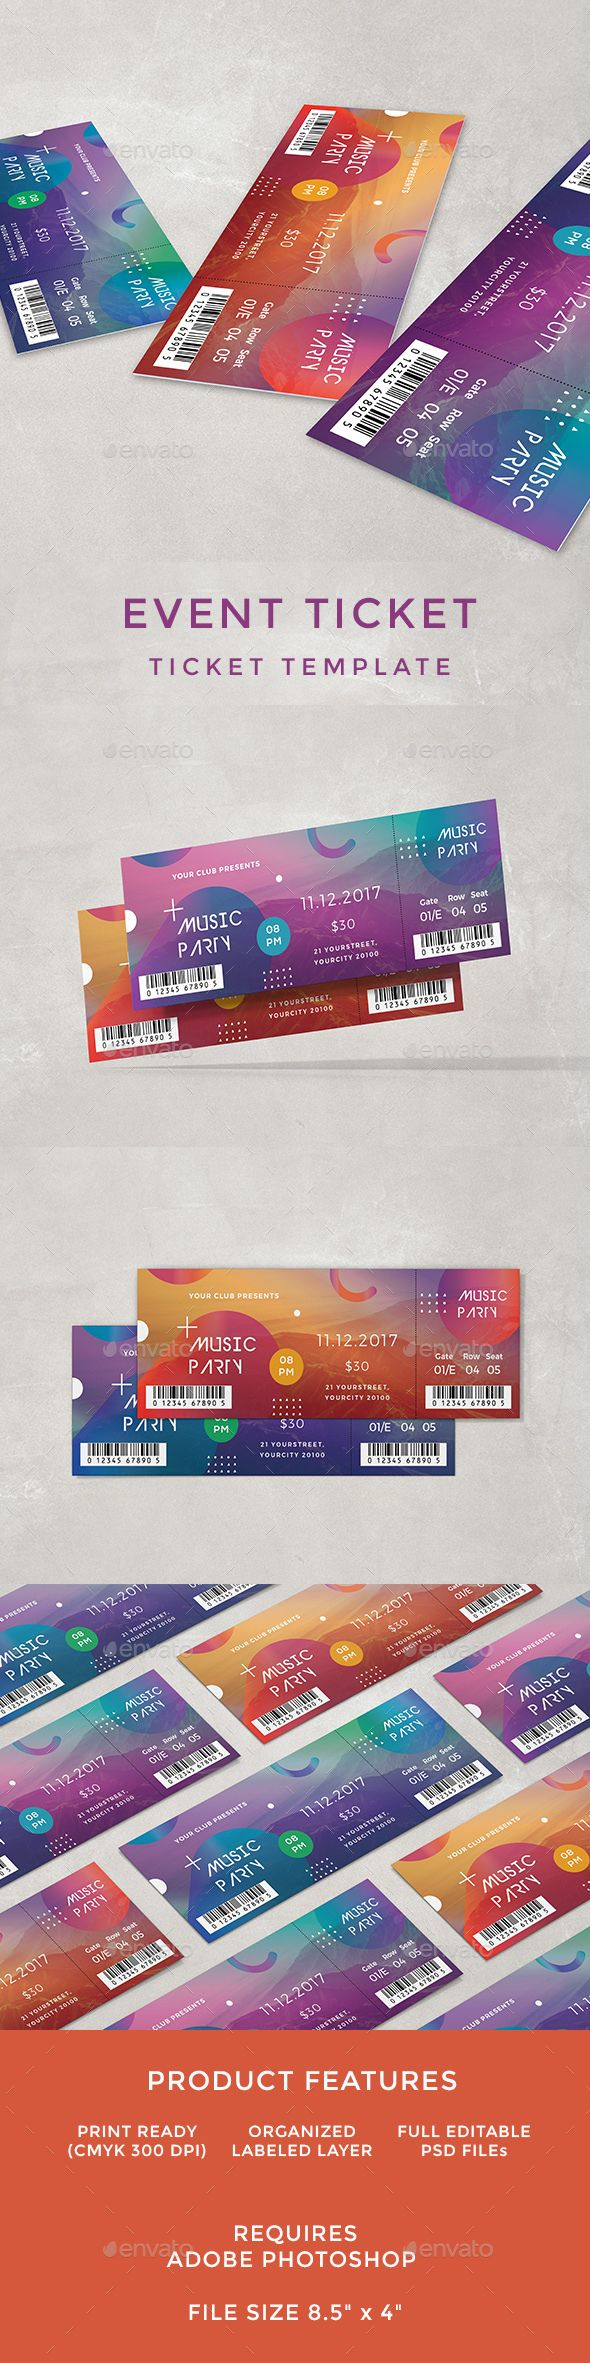 25 best ideas about Event ticket template – Ticket Size Template